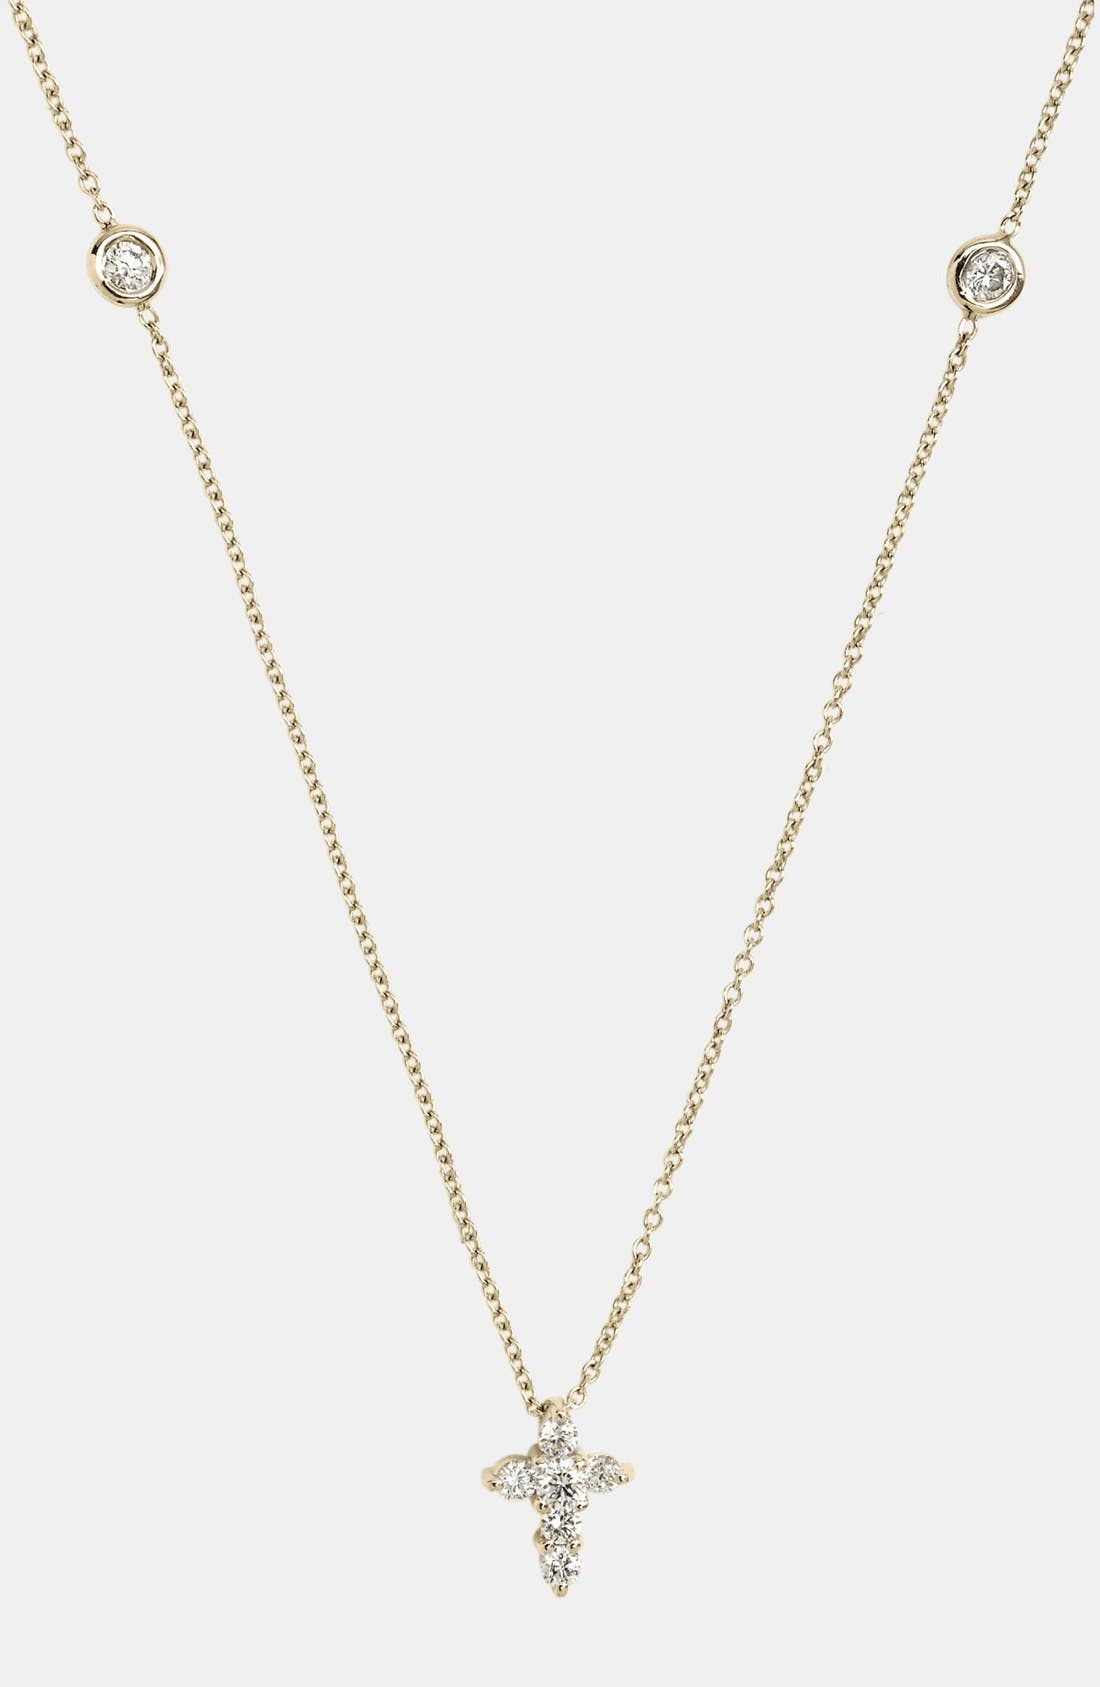 Main Image - Roberto Coin 'Tiny Treasures' Diamond Cross Pendant Necklace (Nordstrom Exclusive)